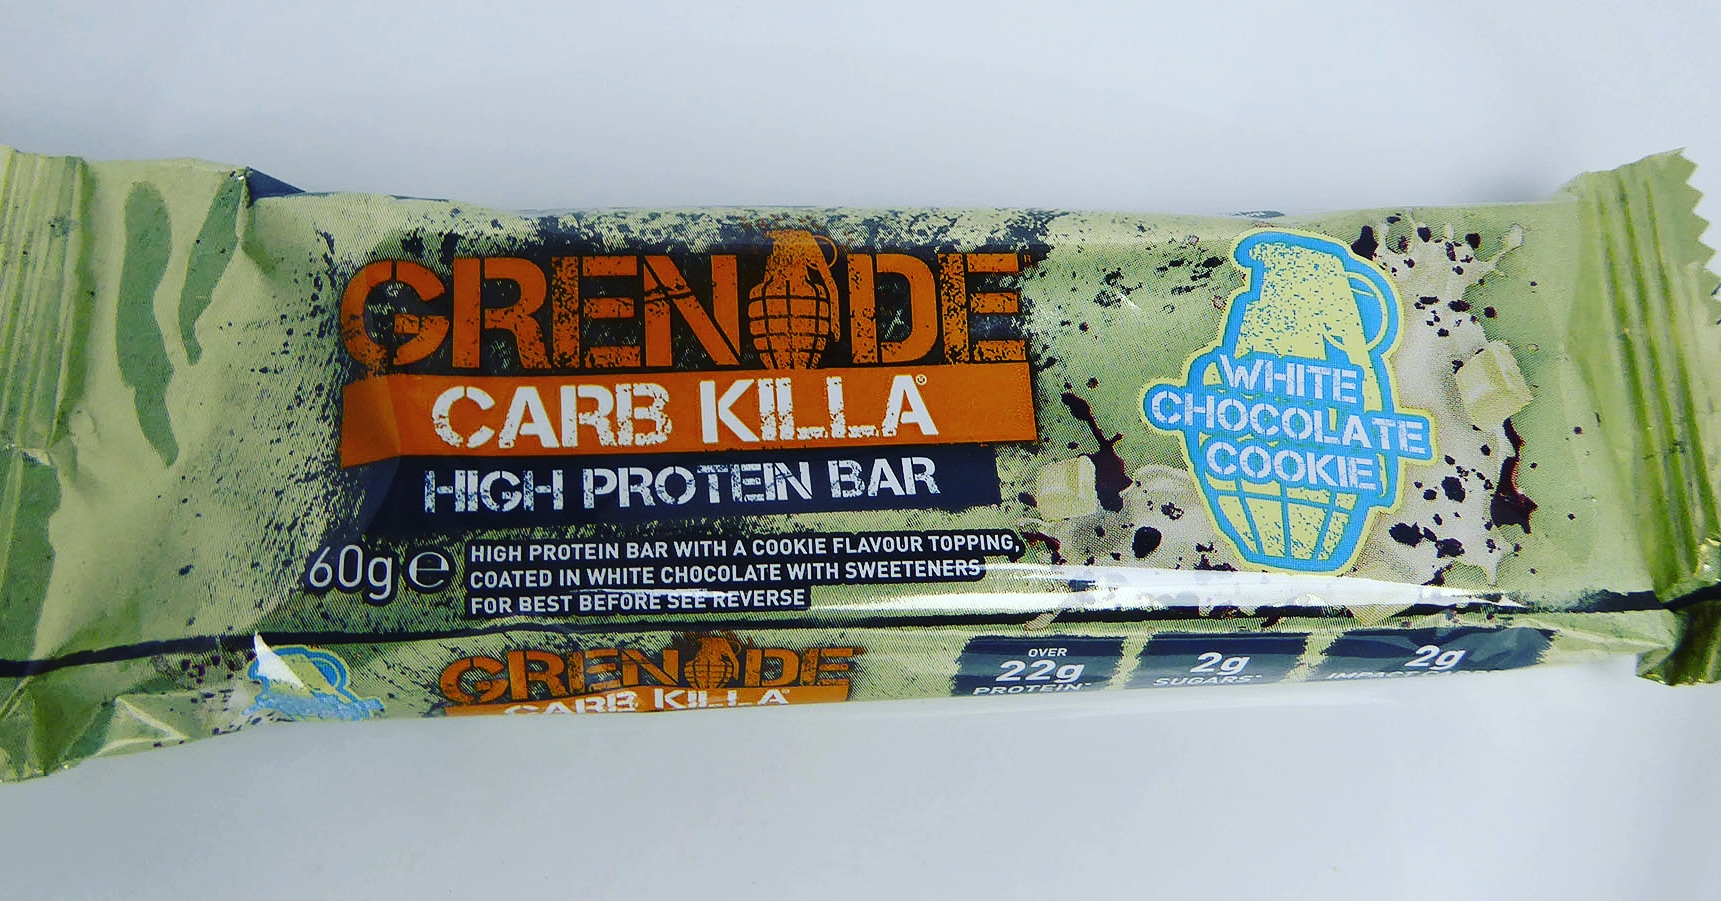 Grenade Carb Killa High Protein Bar White Chocolate Cookie Proteinriegel Eiweißriegel Weisse Schokolade